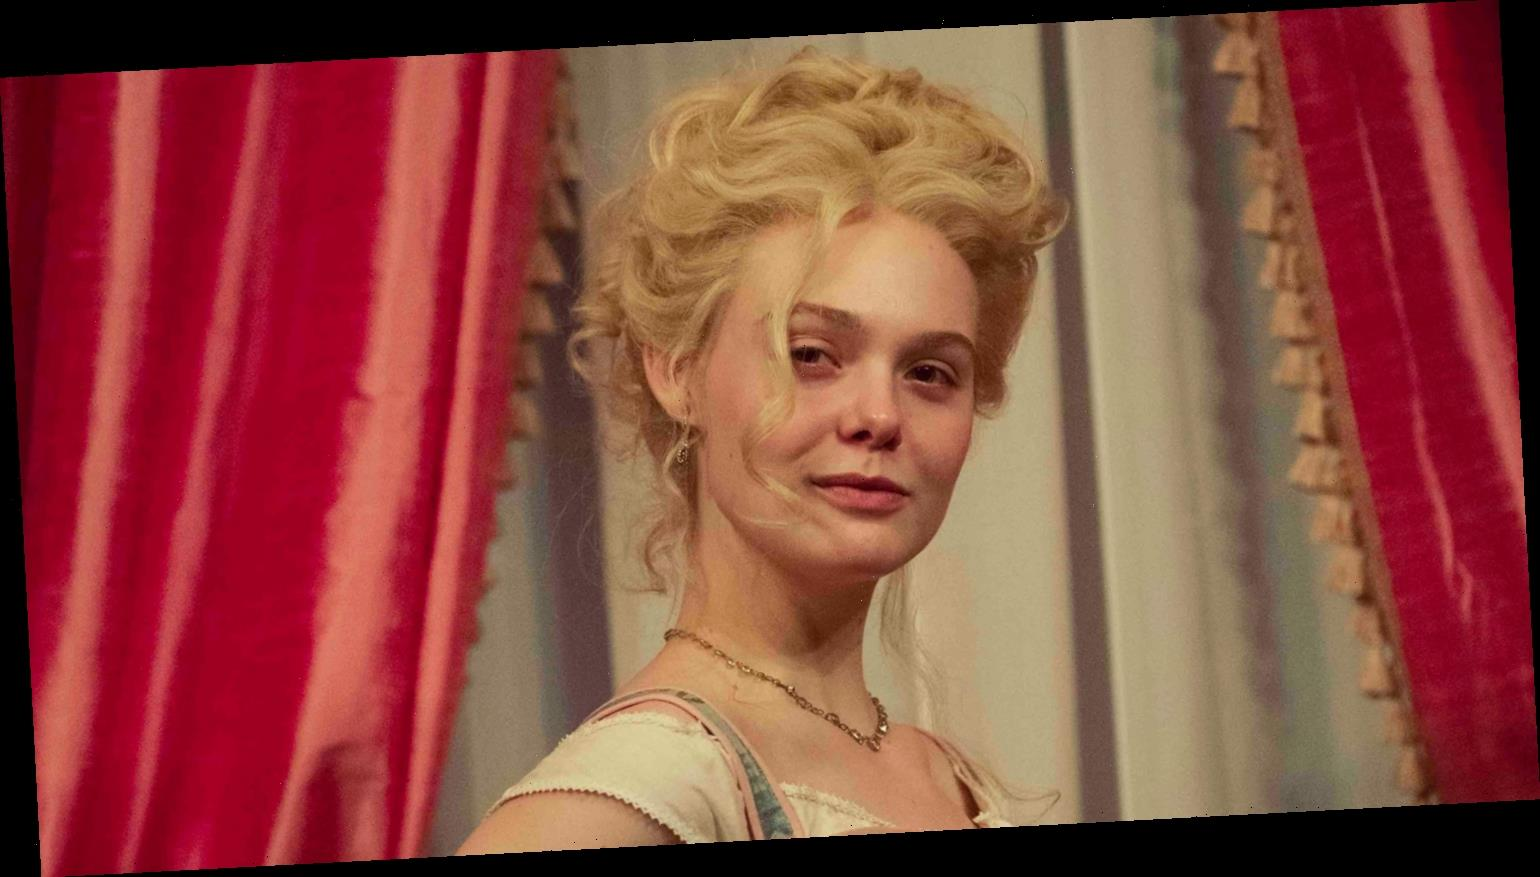 Elle Fanning Shows Off Pregnant Belly In First Look Photo at 'The Great' Season 2